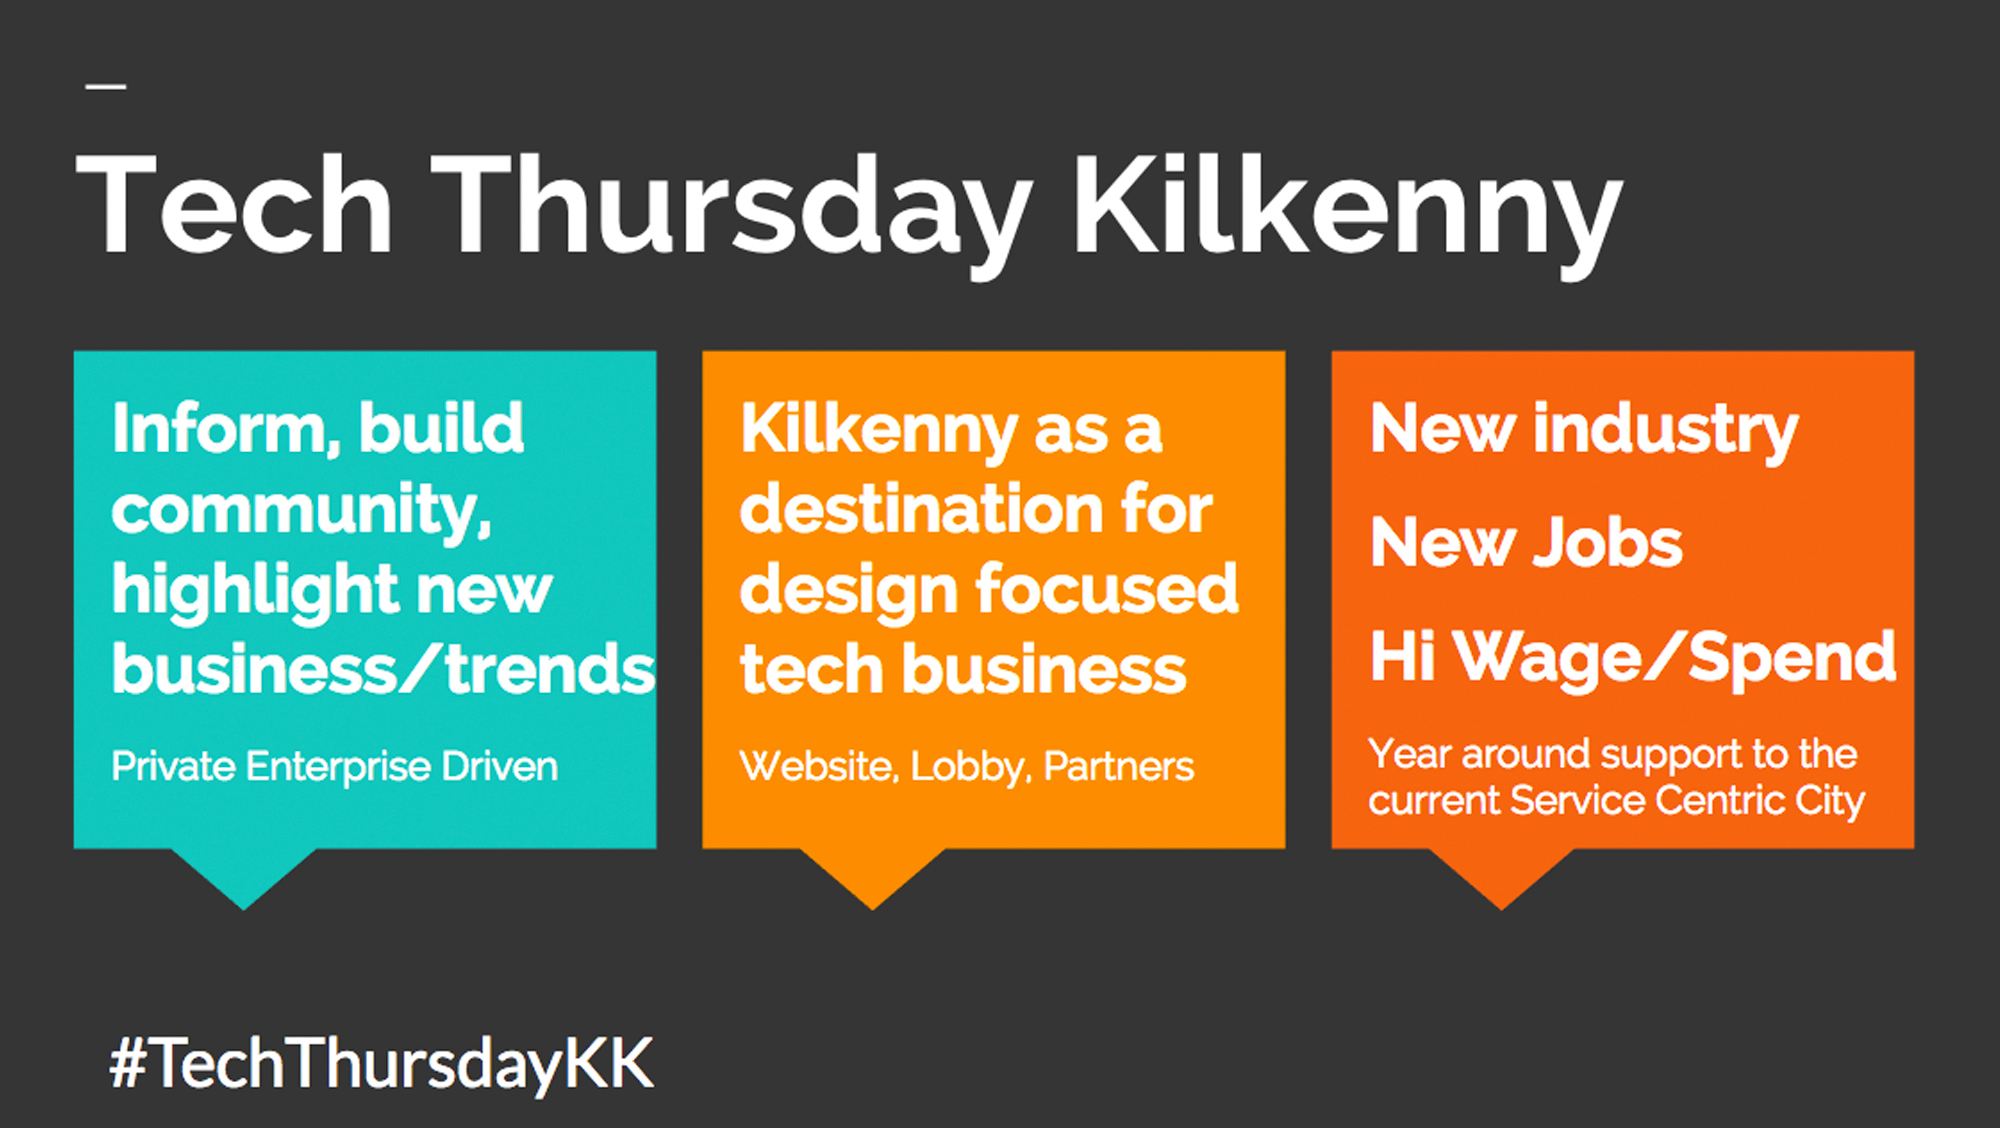 TechThursday Kilkenny